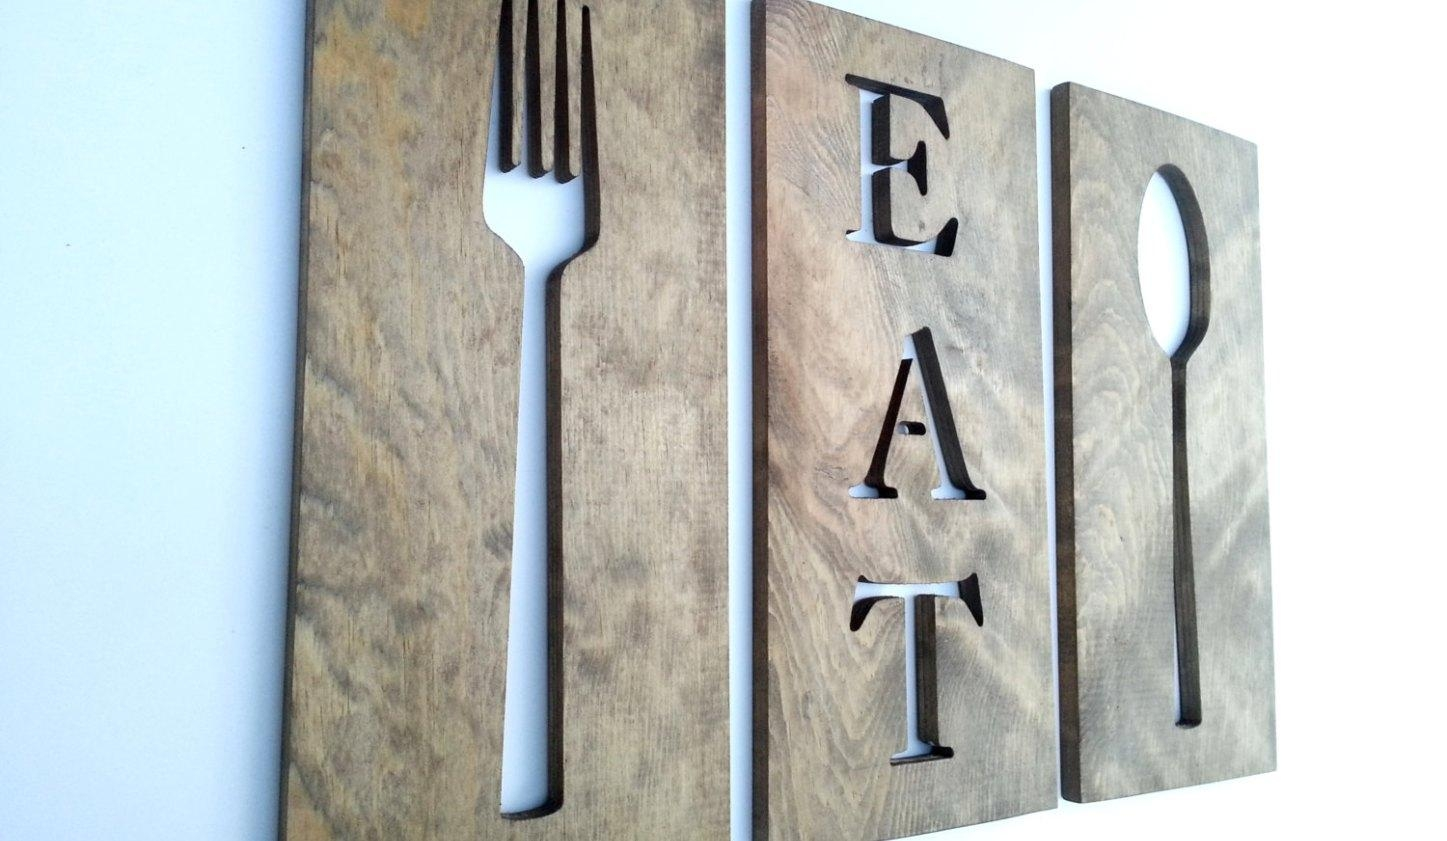 Kitchen : Noteworthy Large Metal Wall Art For Kitchen Favored With Regard To Italian Wall Art For Sale (View 9 of 20)